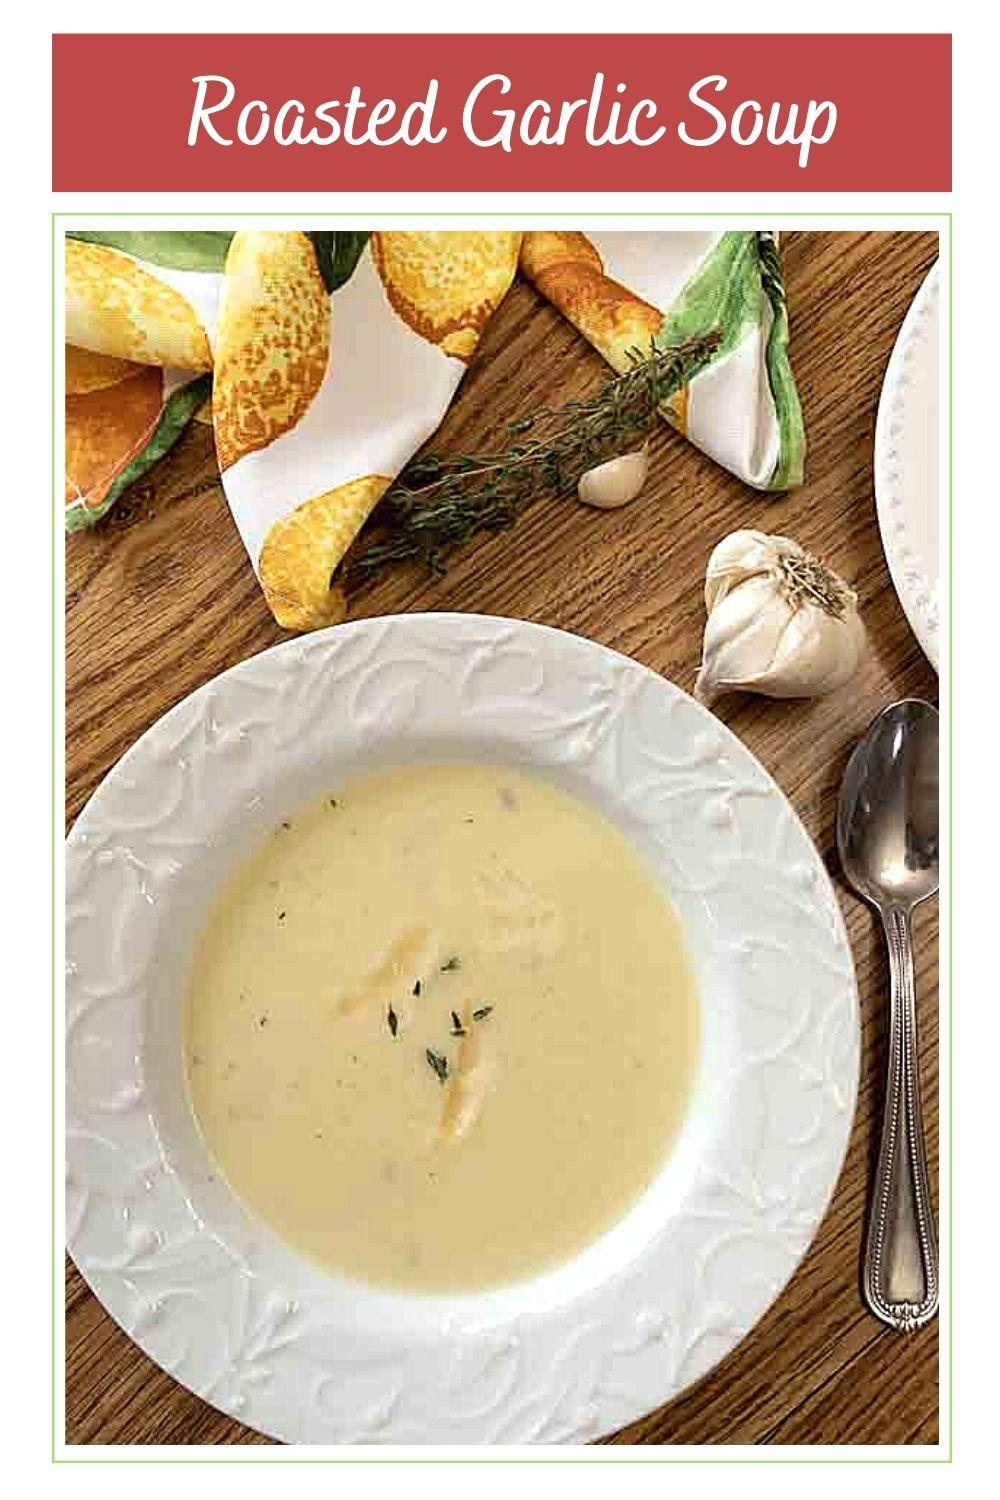 Rich and flavorful, Creamy Roasted Garlic Soup is a garlic lover's dream. Perfect as a starter, or add bread and salad for a tasty lunch.